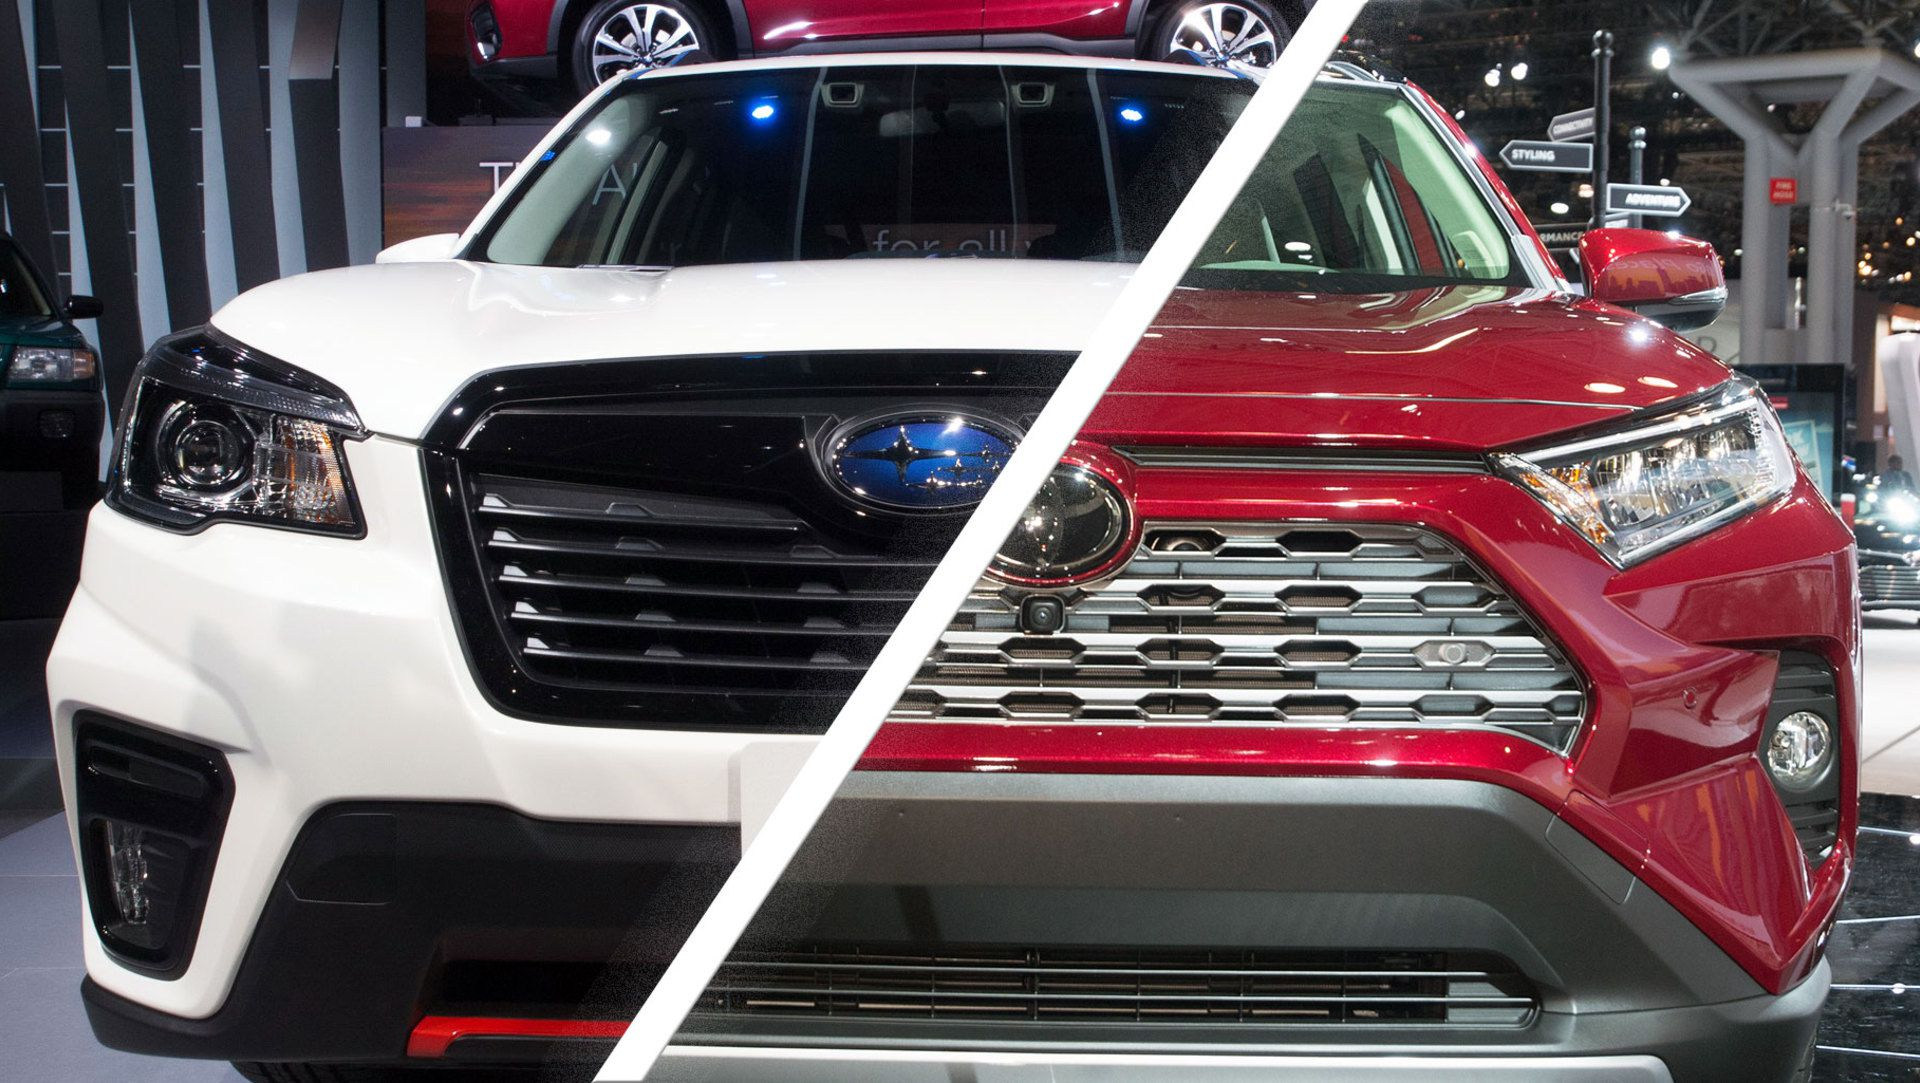 2019 Toyota Rav4 Vs Subaru Forester: What Rugged Suv Would You Spring For?